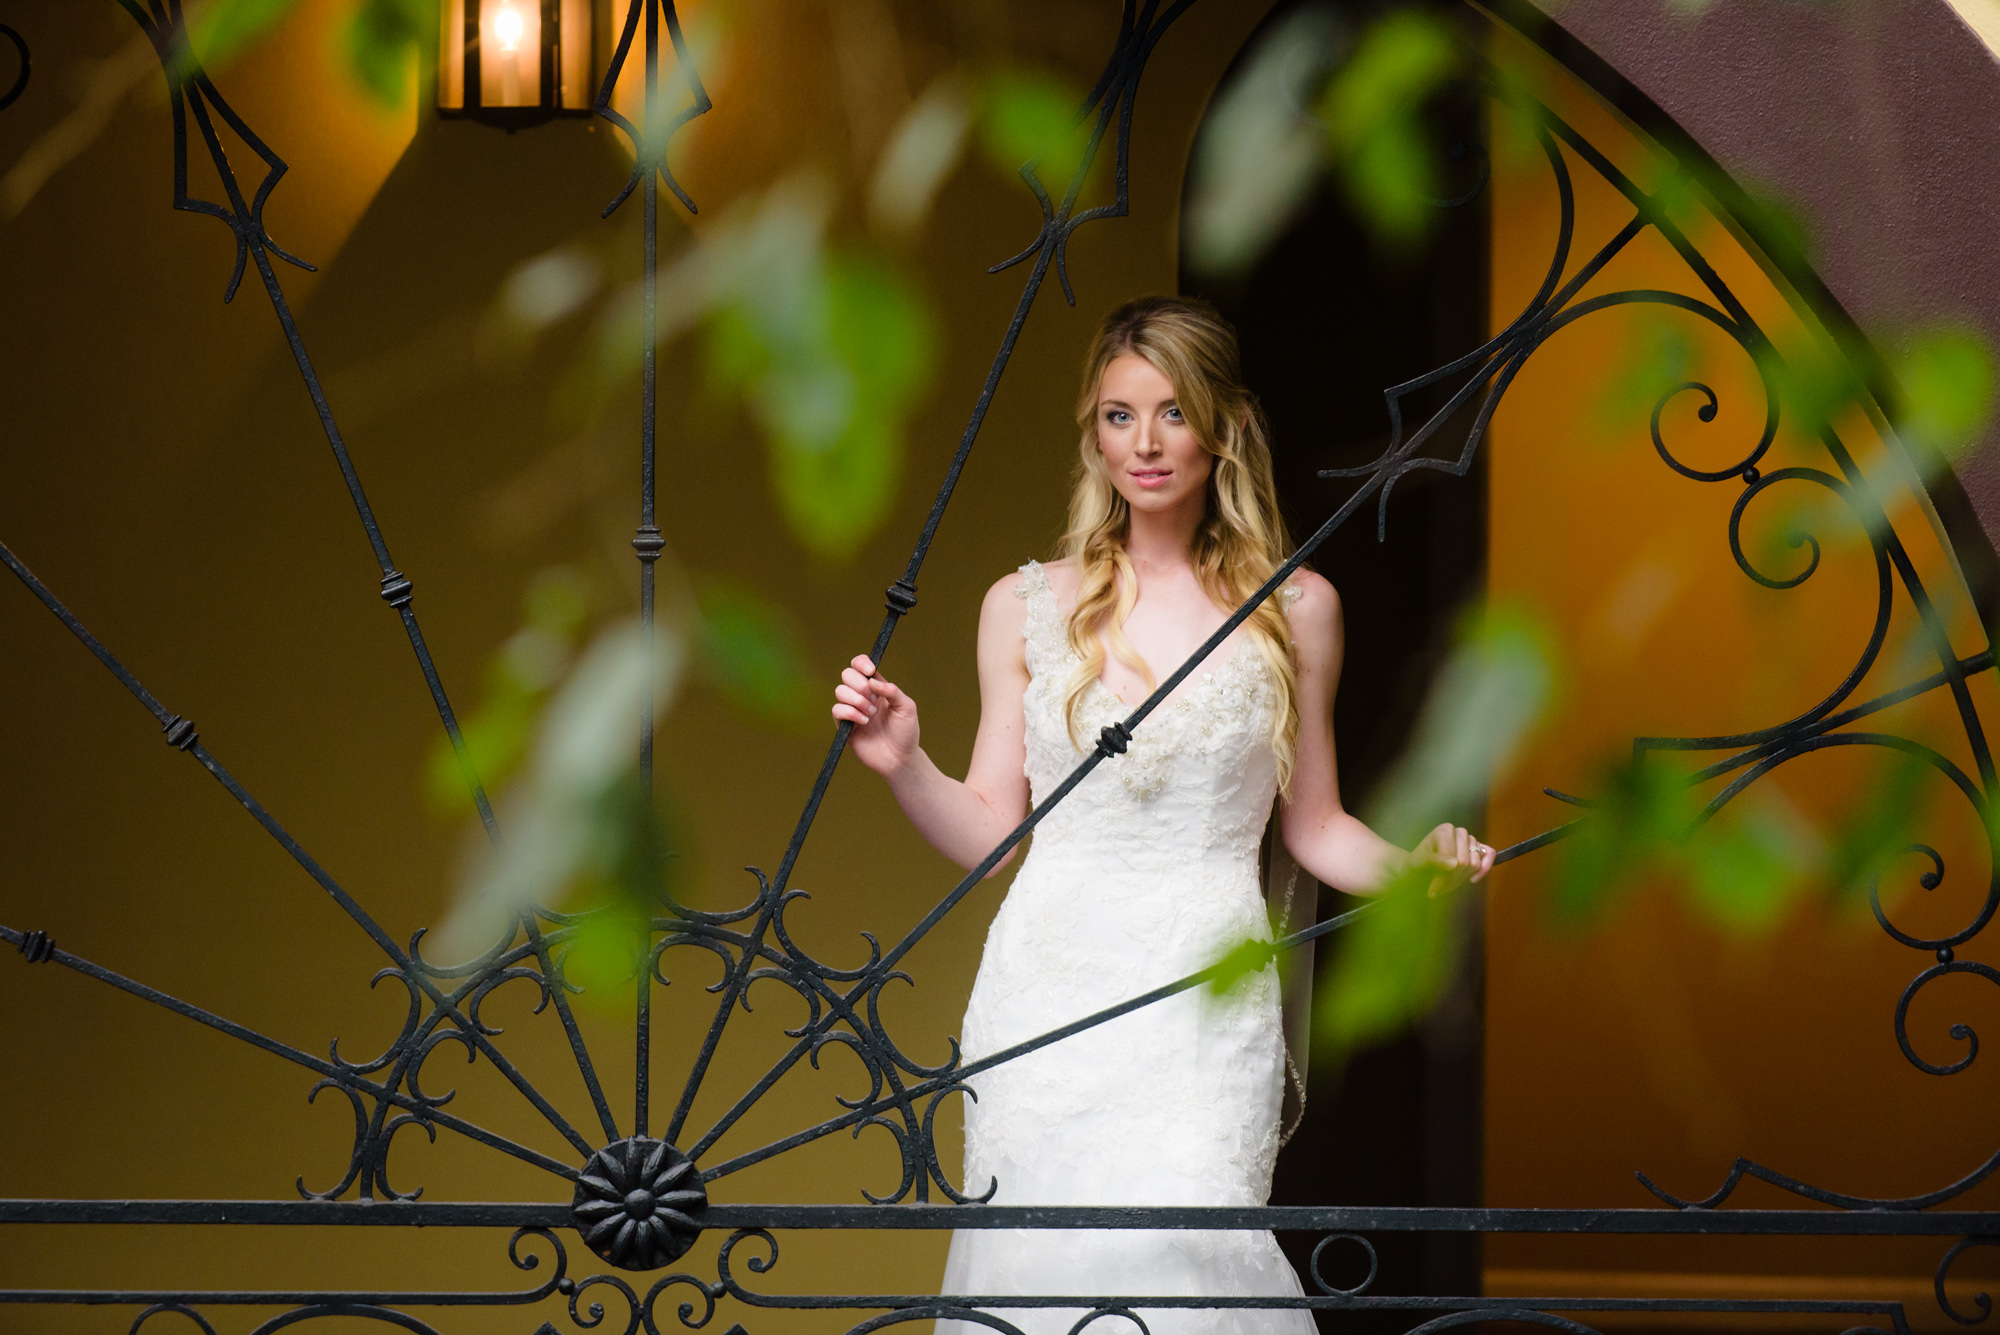 Bridal portrait shoot at Hotel Mazarin in the French Quarter, New Orleans